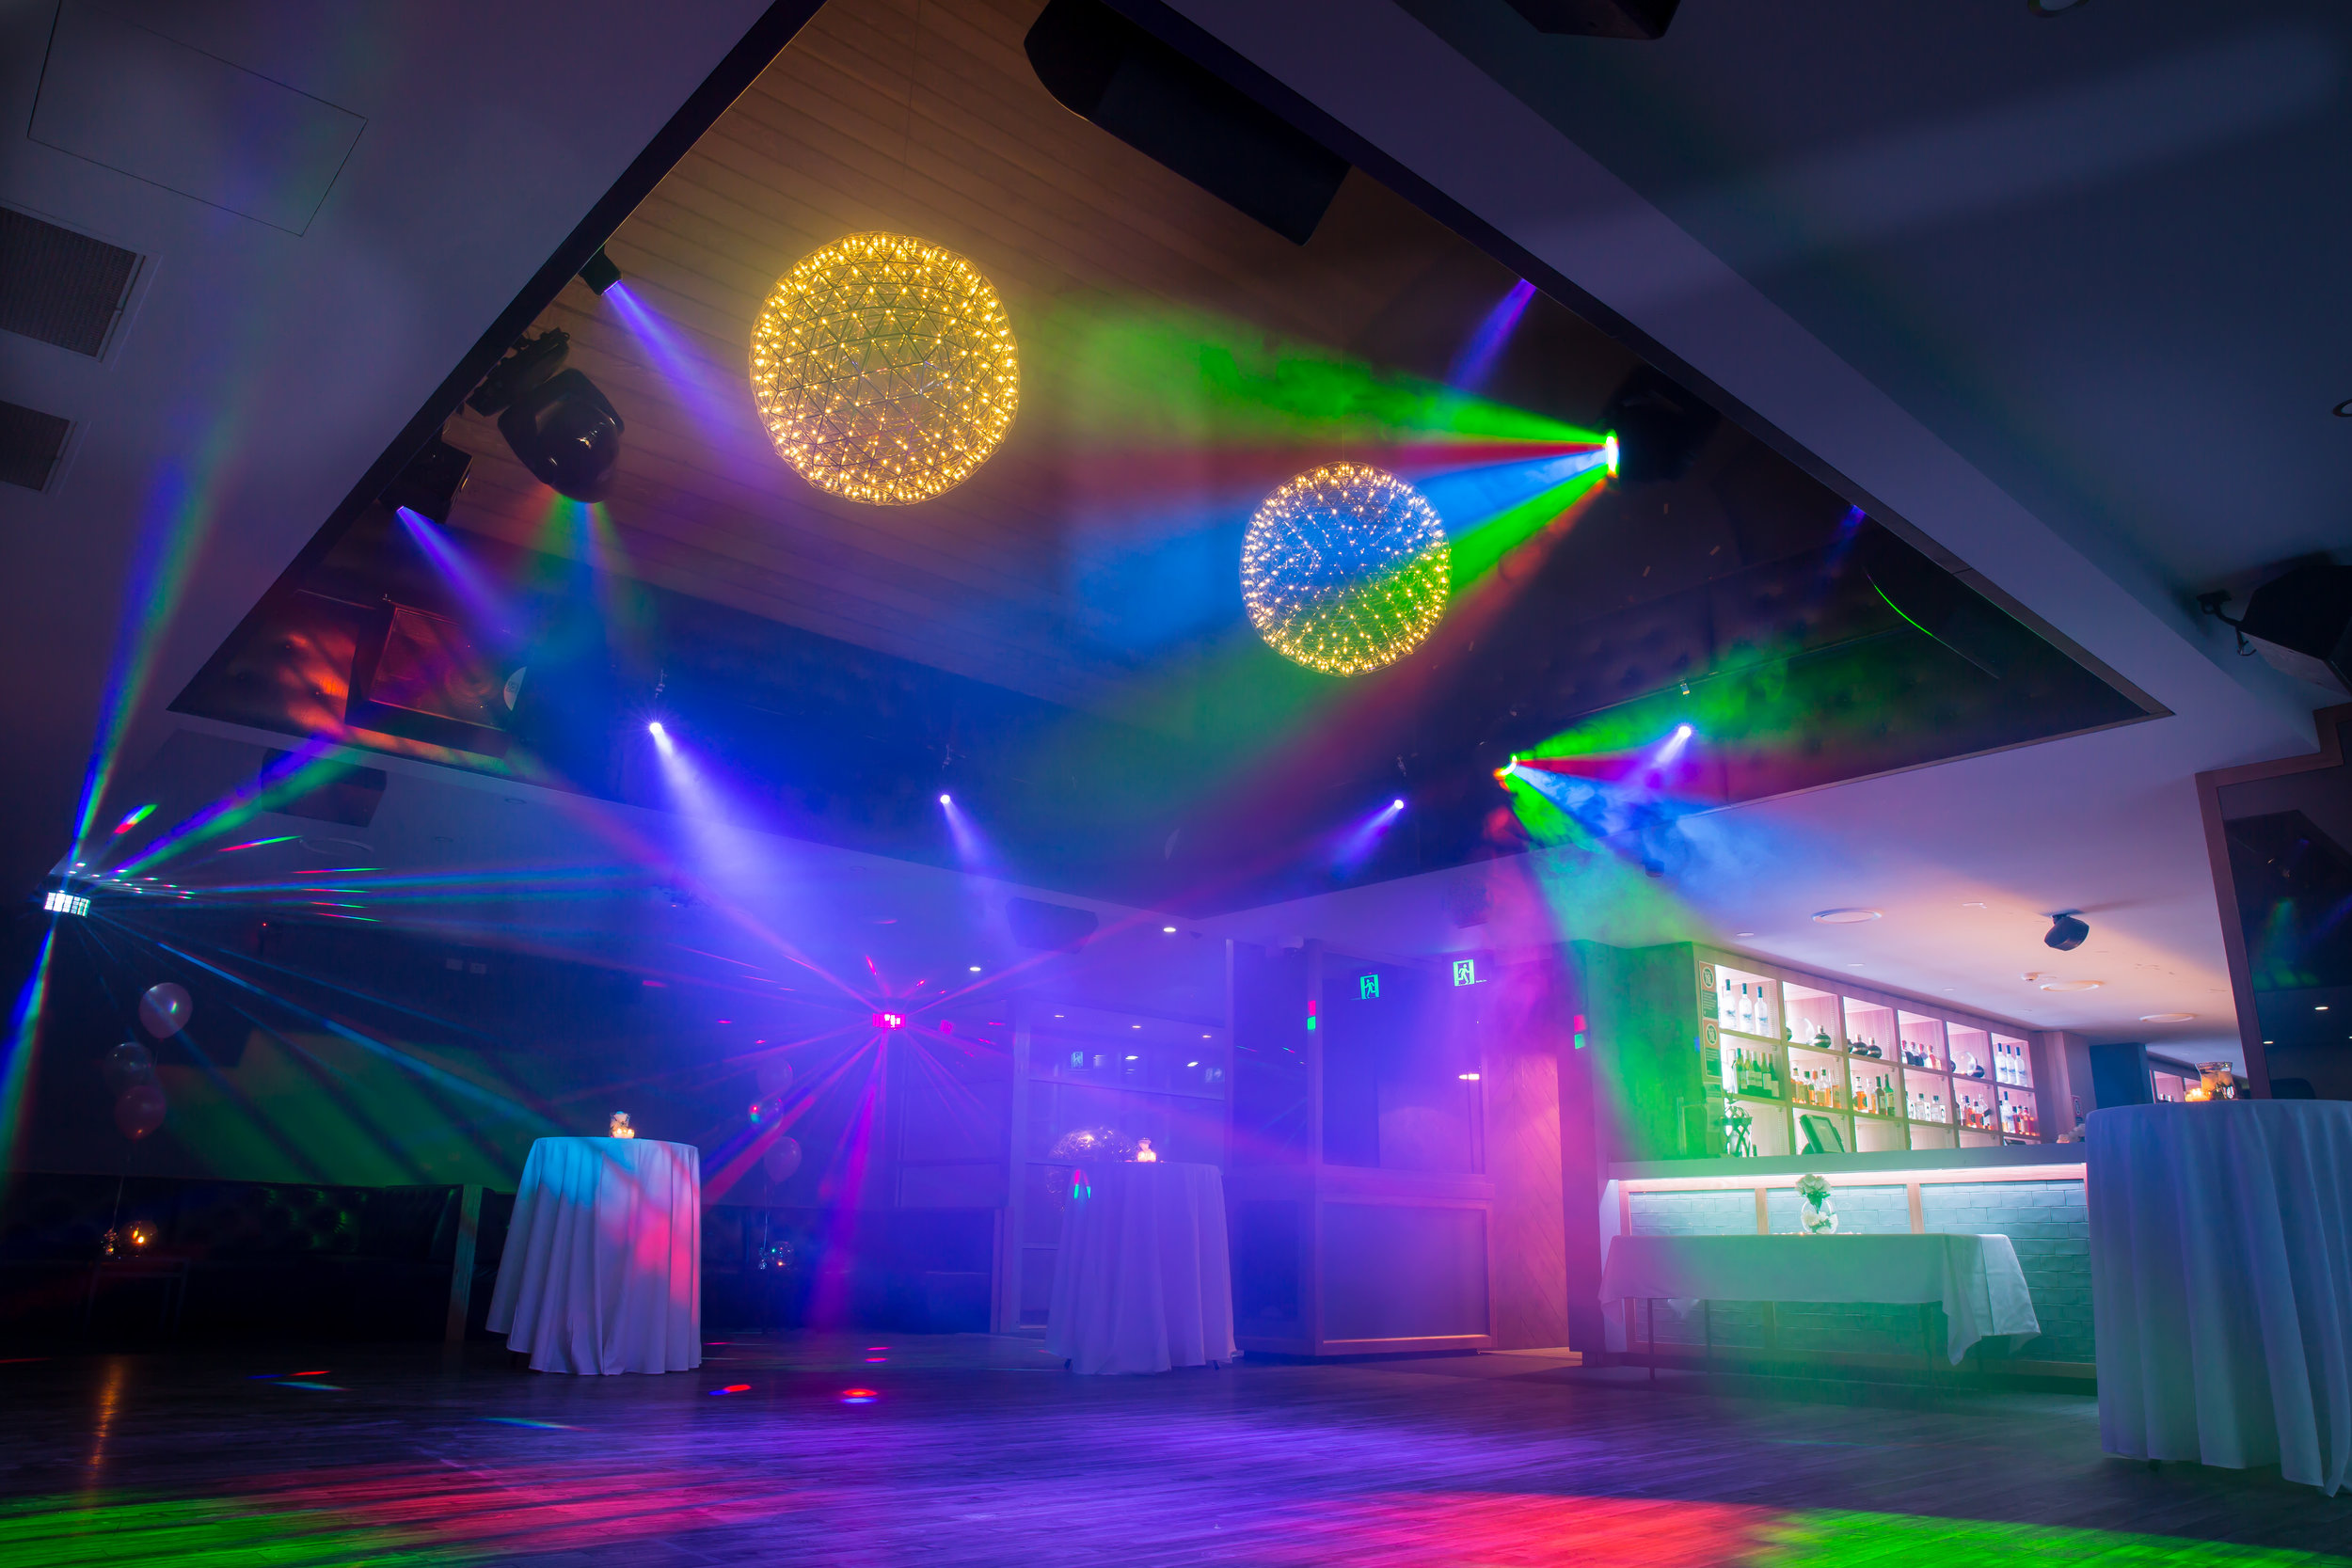 the-hillside-hotel-nightclub-photography-sydney-1800829994.jpg